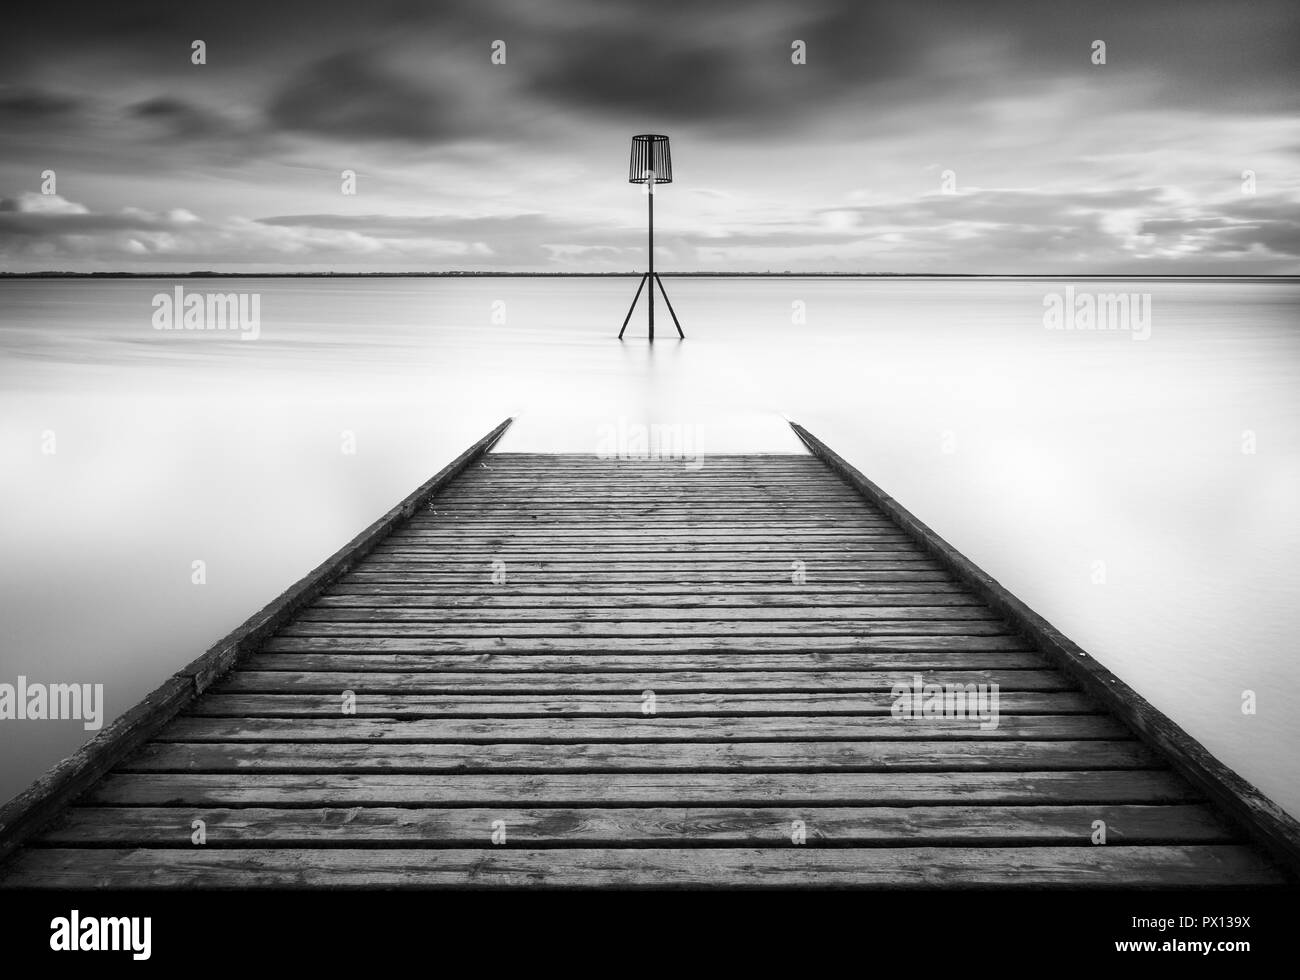 The lifeboat Jetty at Lytham on the Lancashire coast in the north of England - Stock Image